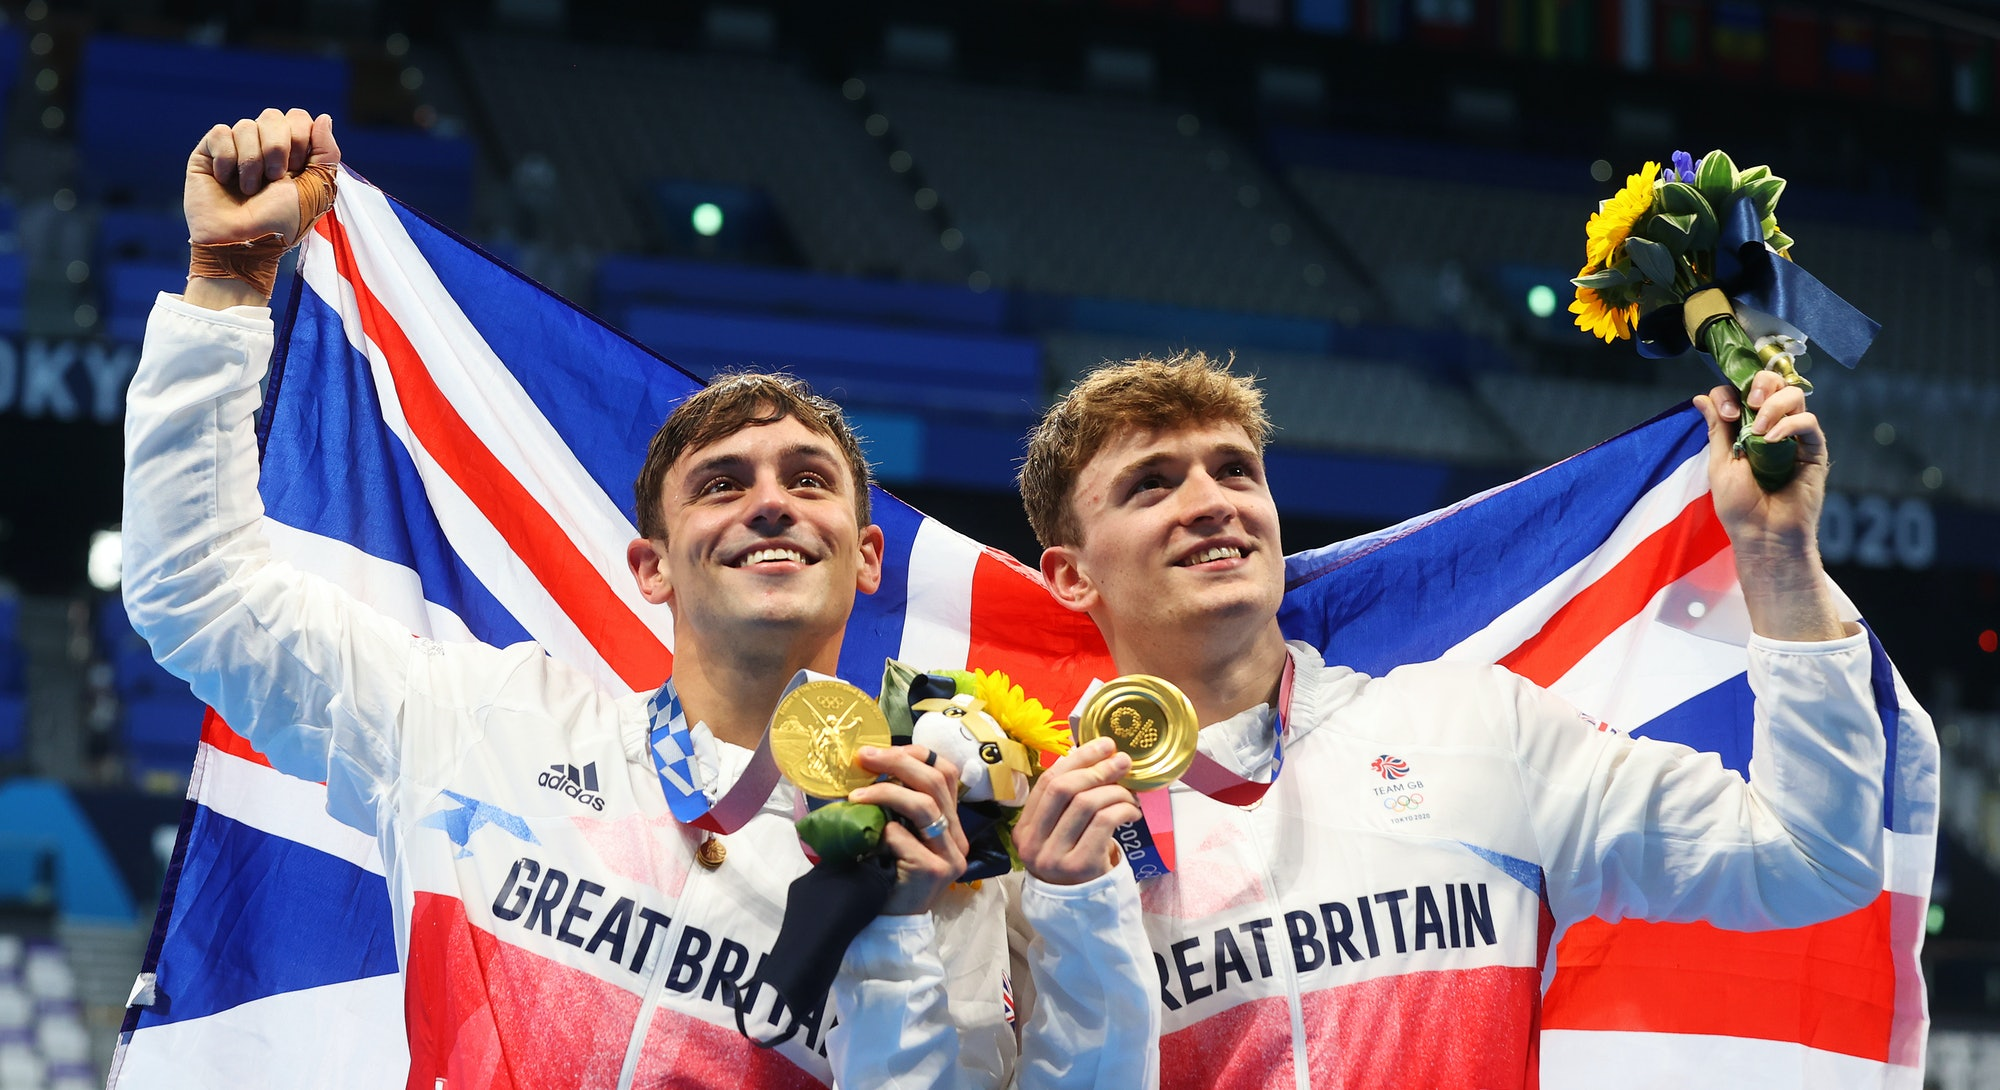 Tom Daley and Matty Lee of Team Great Britain pose for photographers with their gold medals after wi...